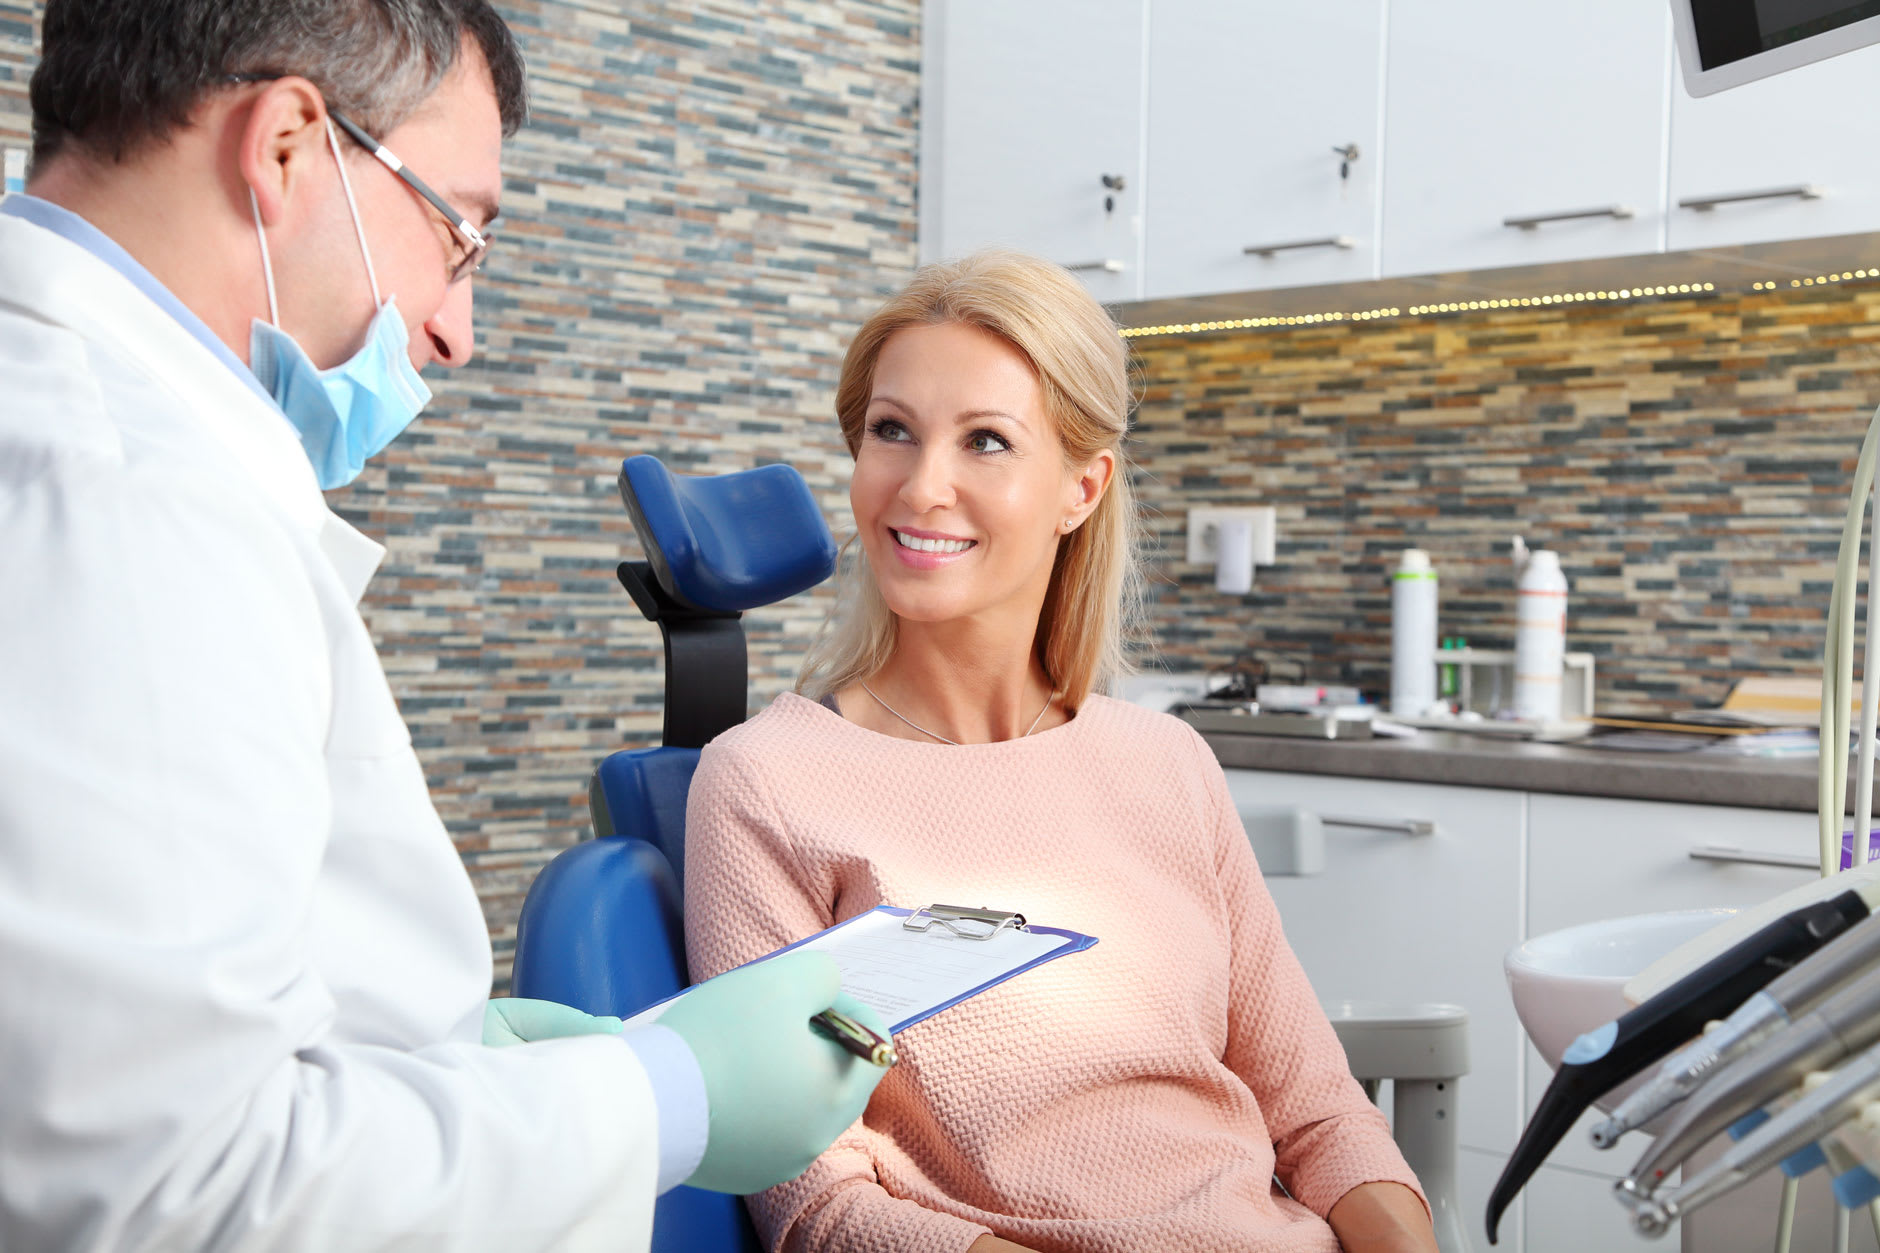 A male dentist explains what is going to happen in the tooth extraction process to a female patient.